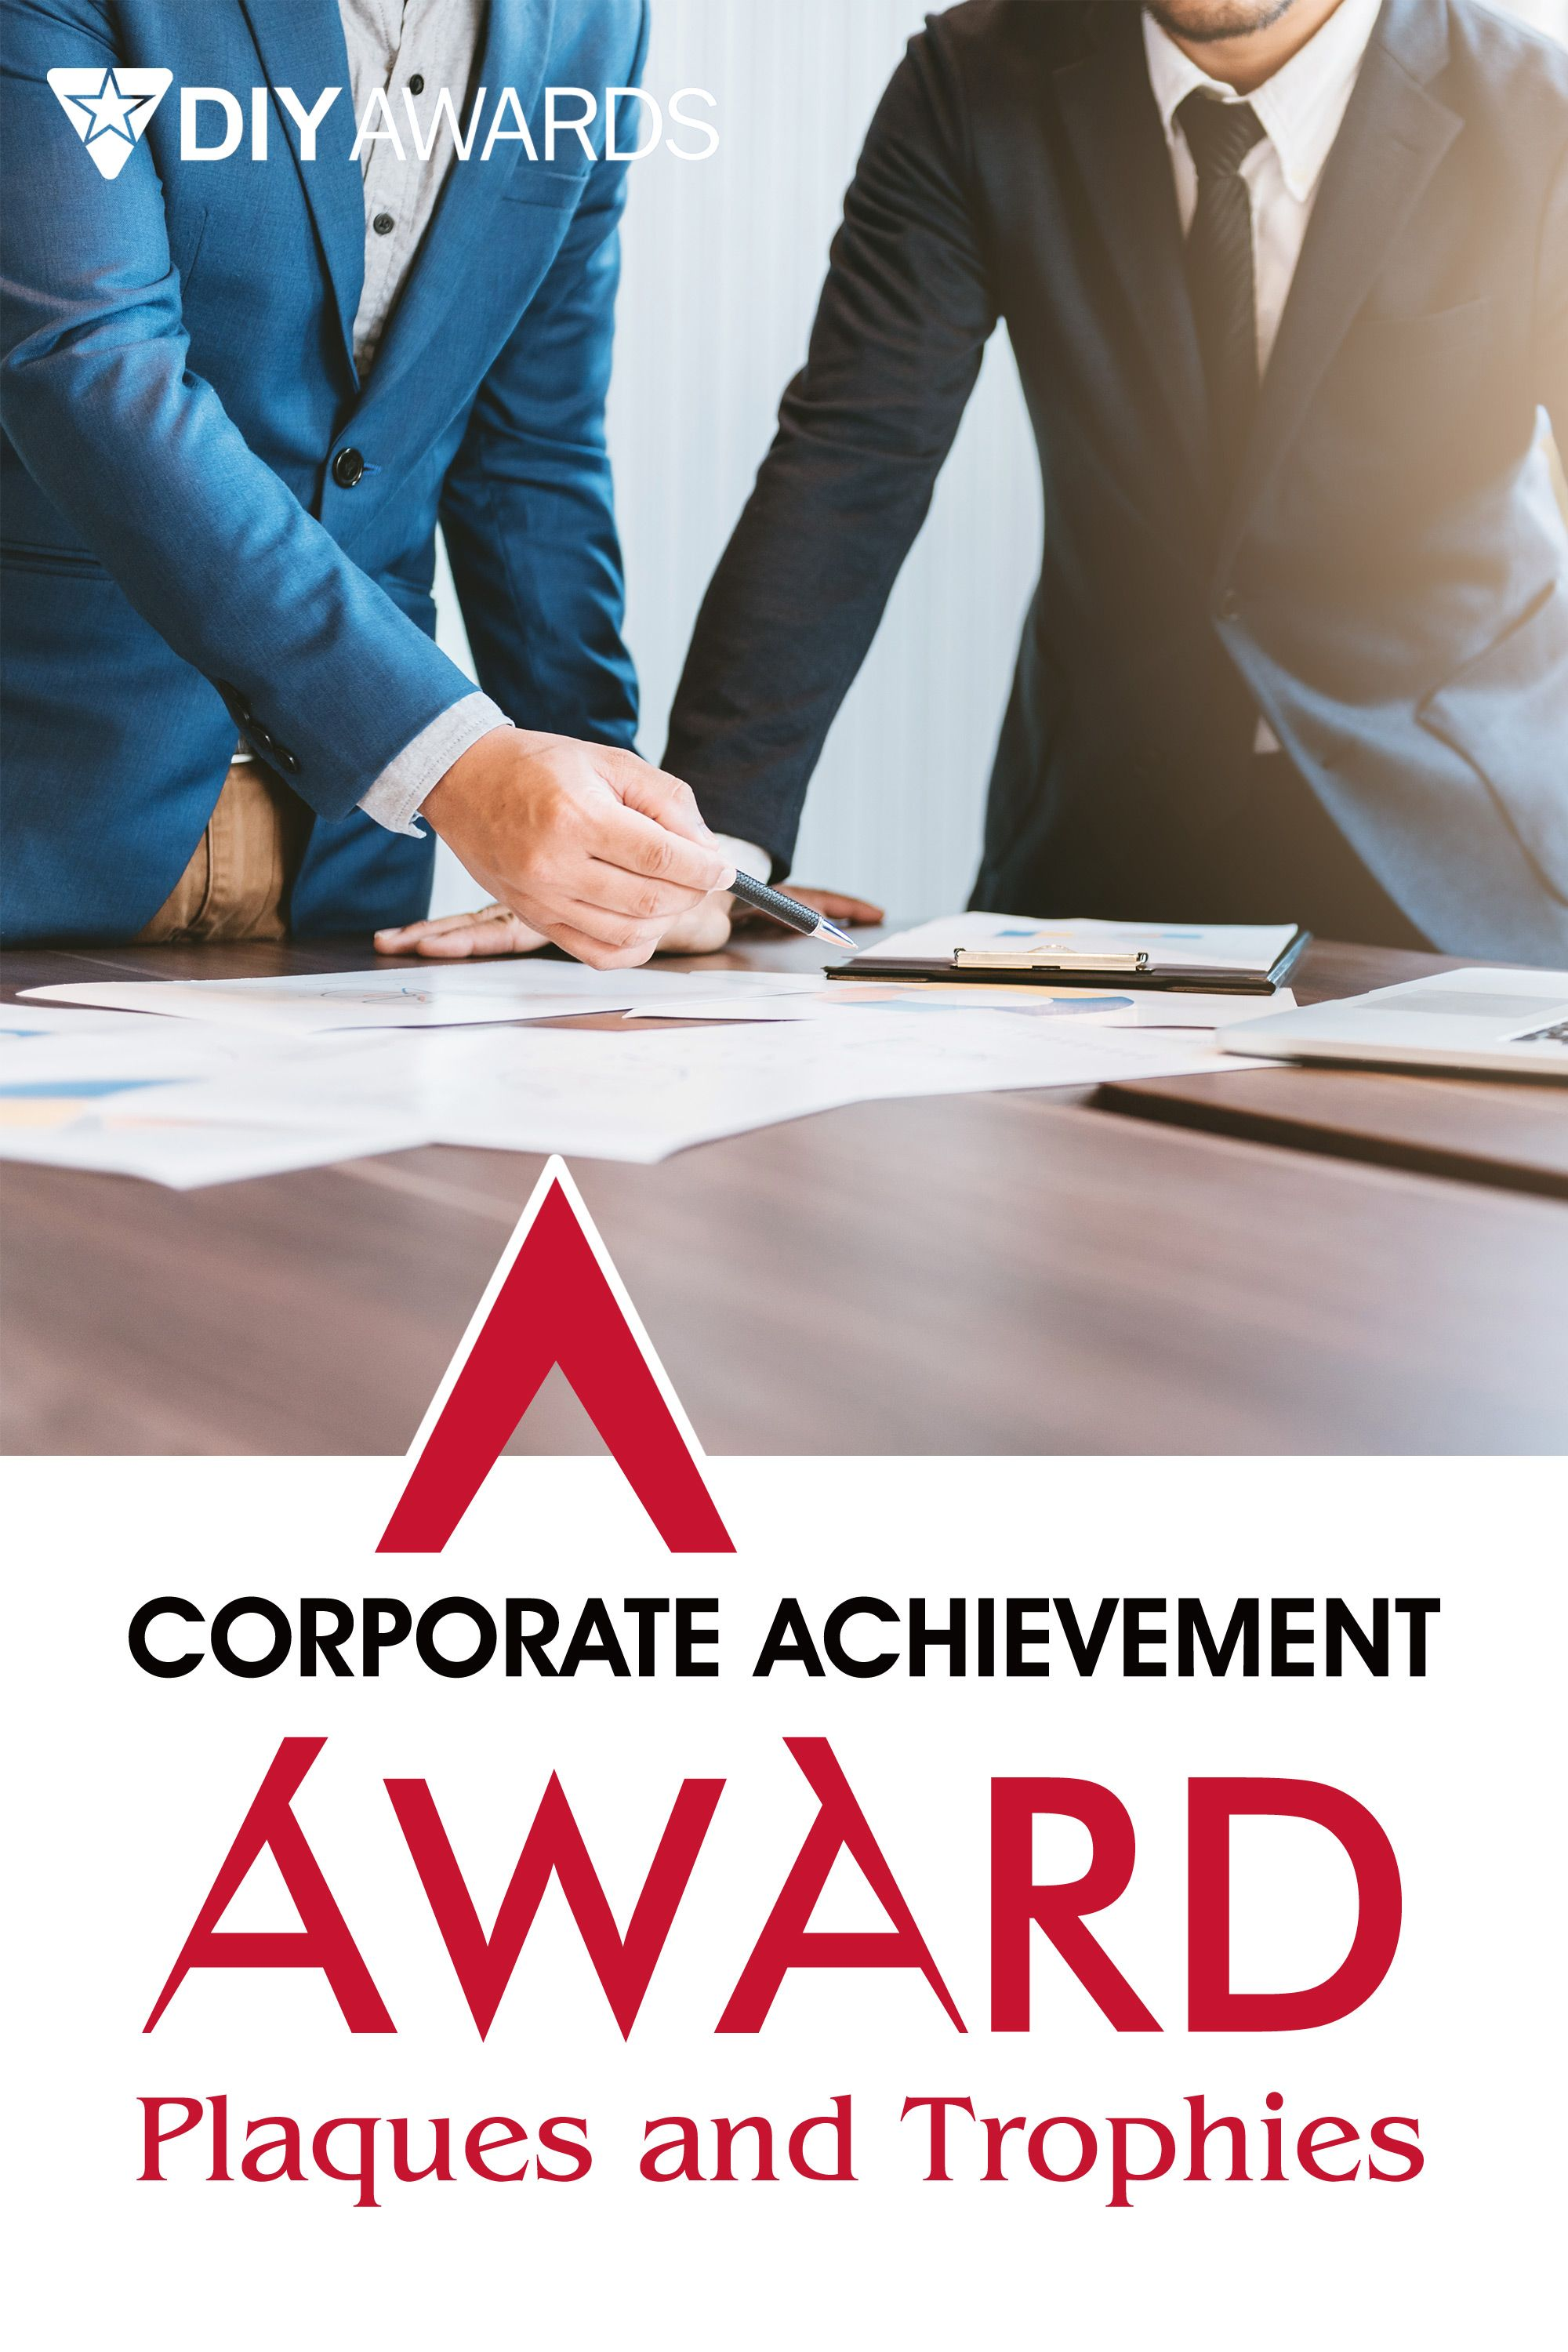 Corporate achievement award plaques and trophies